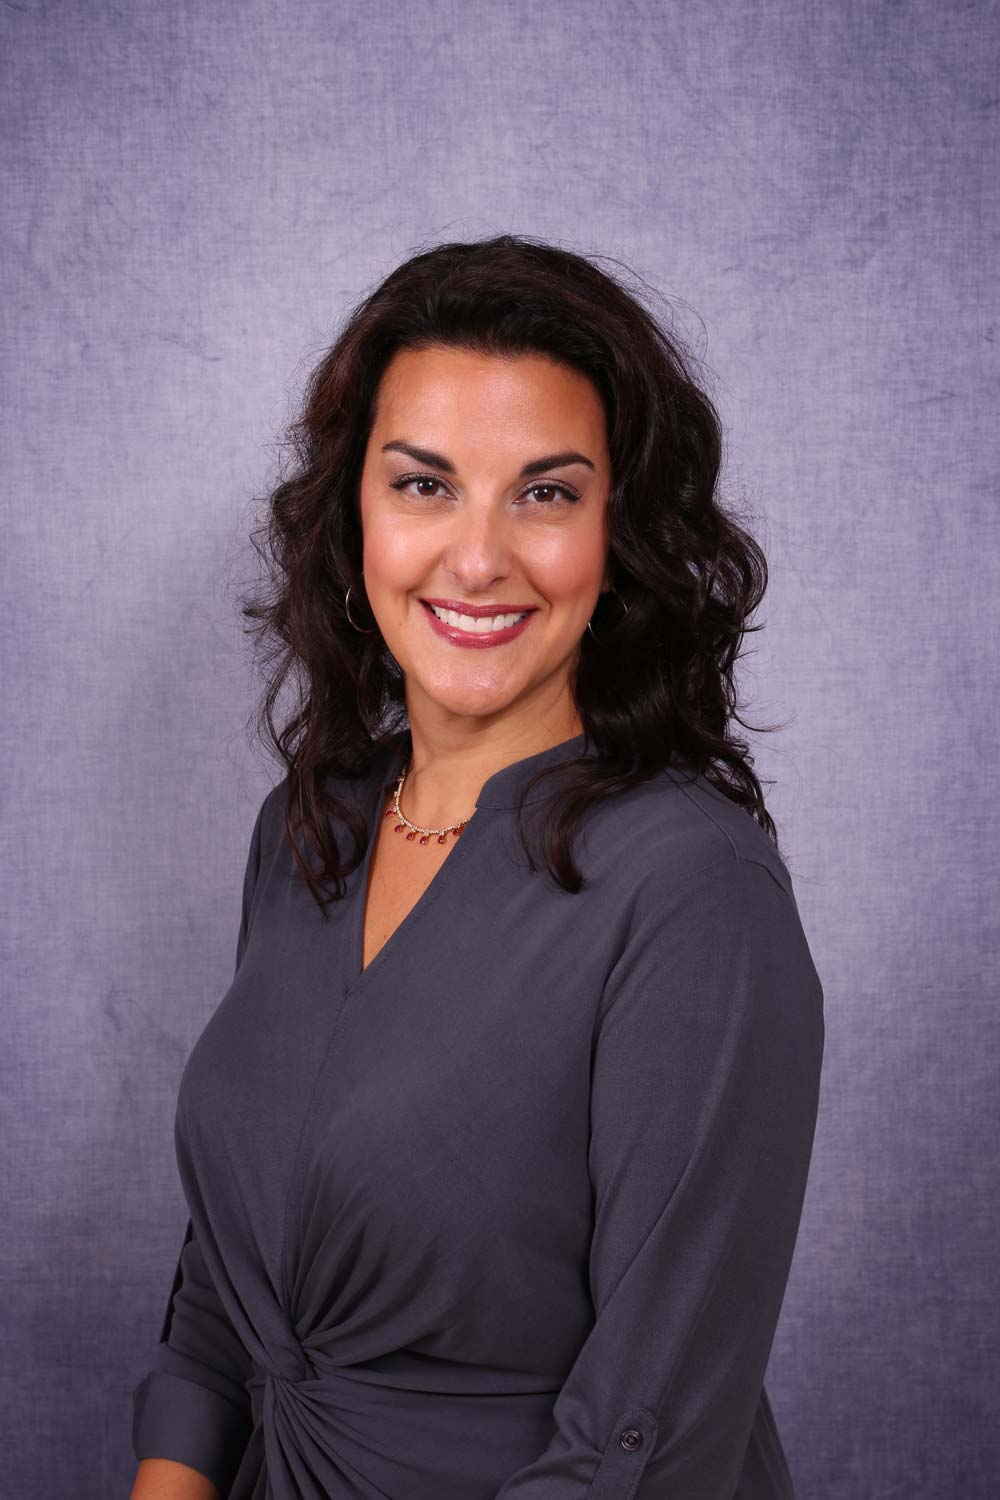 Rosa Cannata - Physician Assistants Certified of CNY Cosmetic & Reconstructive Surgery, LCC in Syracuse, New York